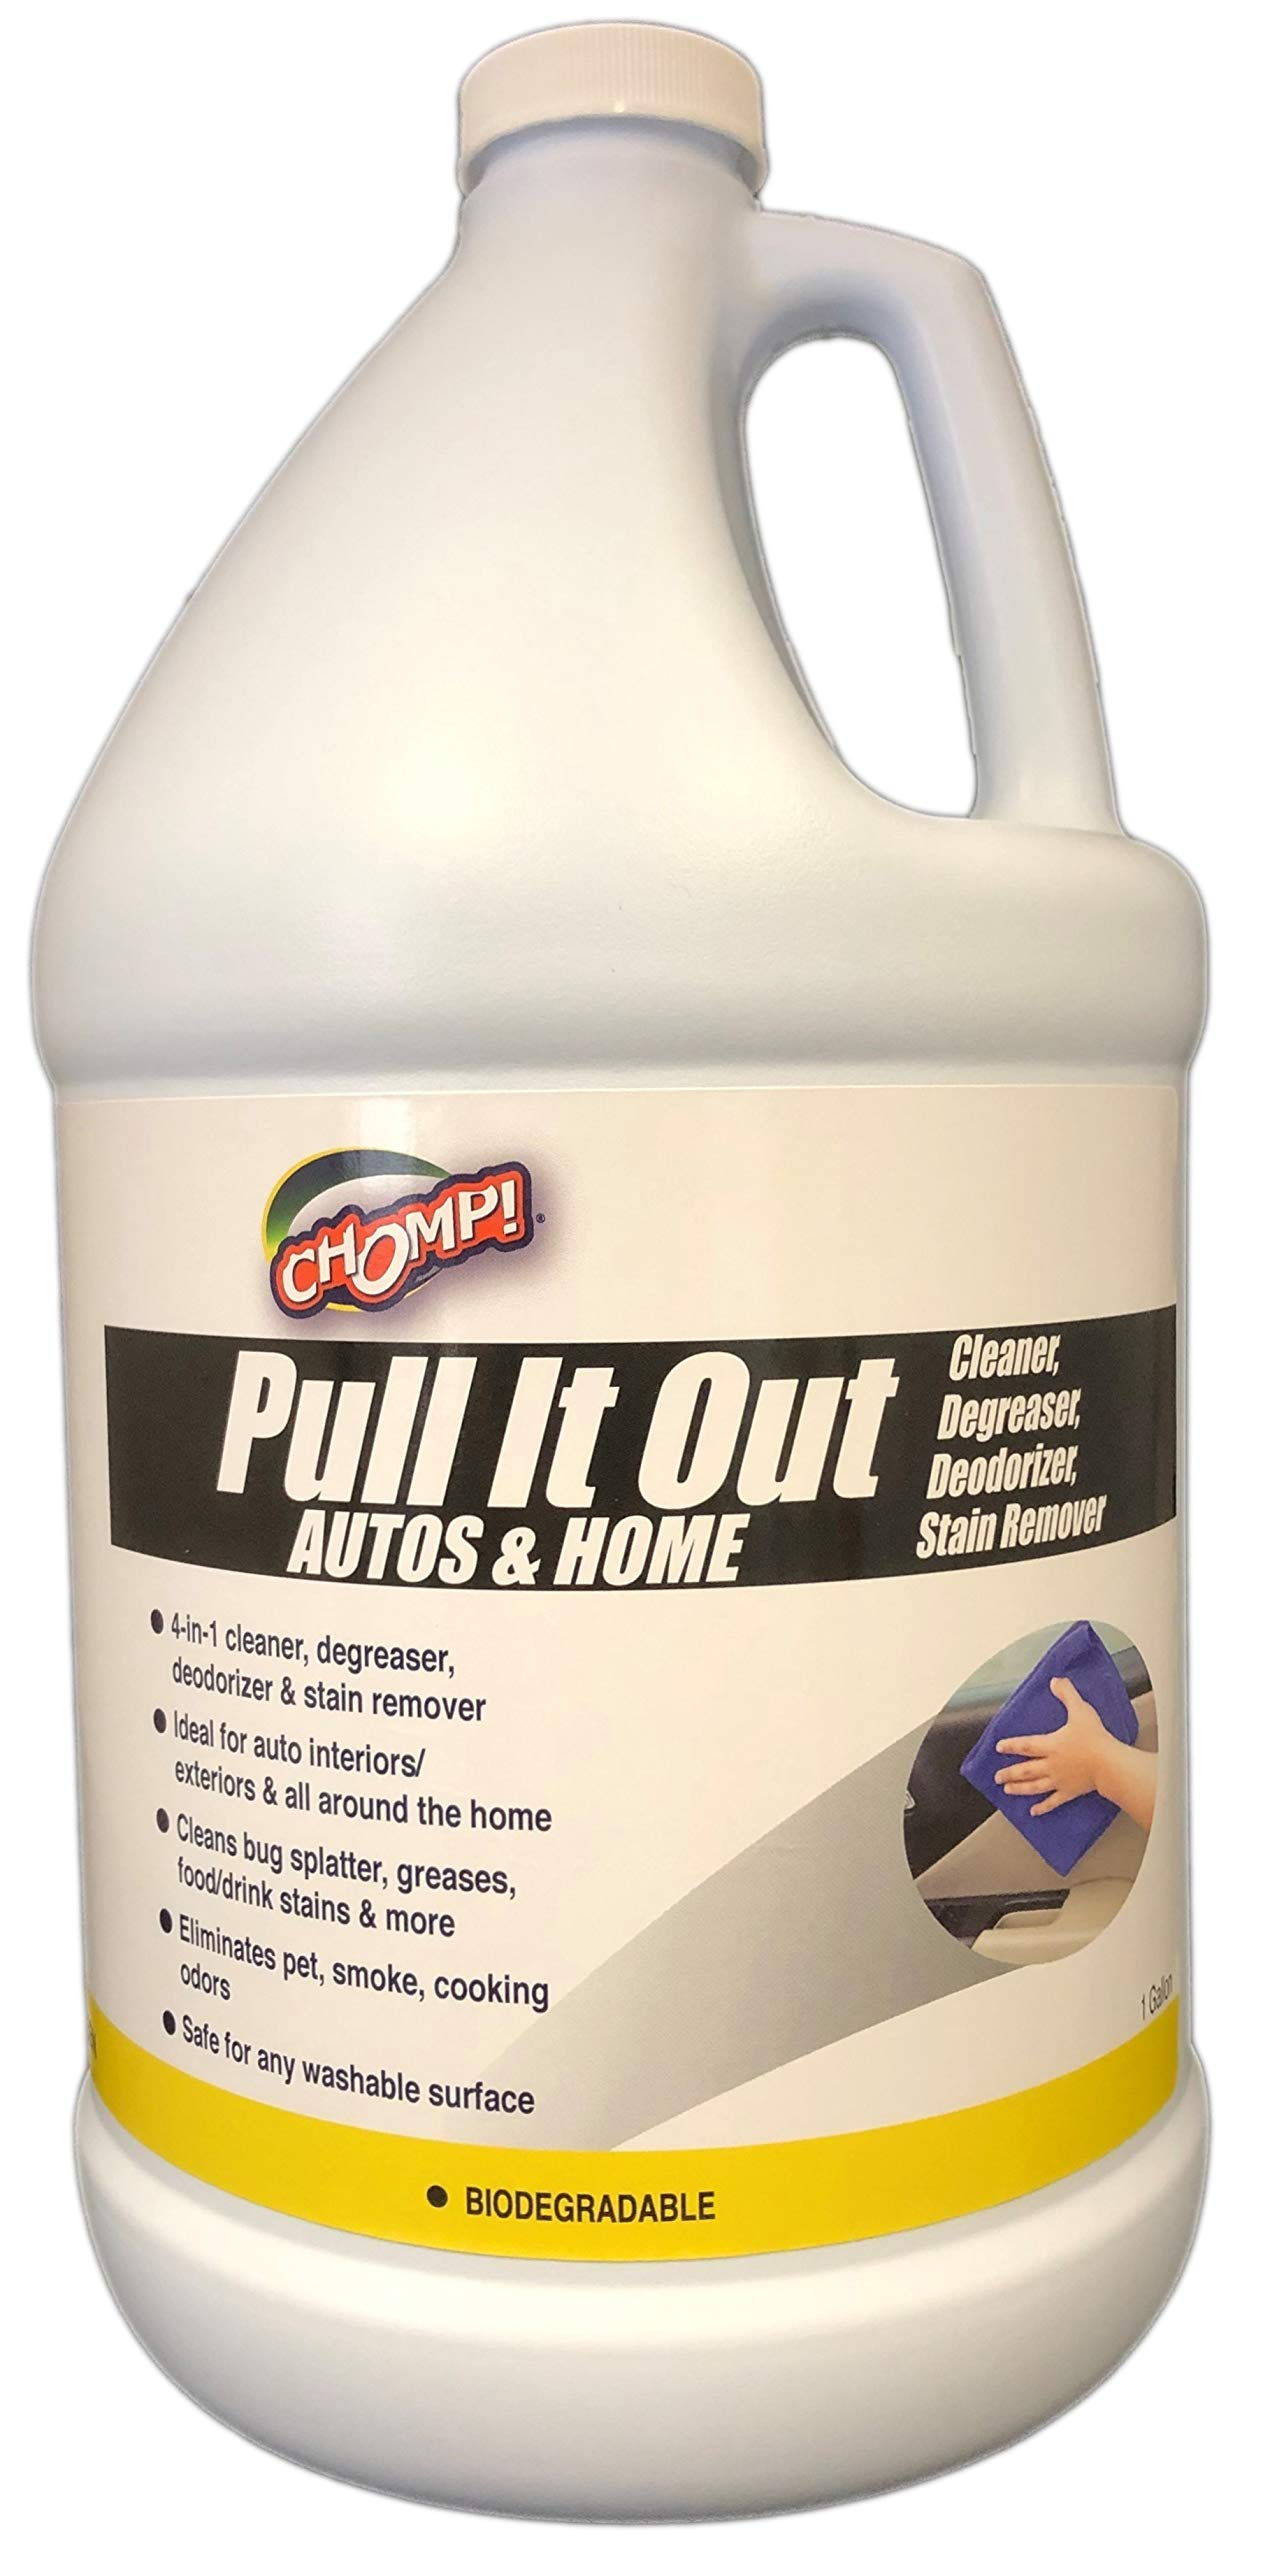 Chomp Heavy Duty Degreaser Cleaner Refill: Pull It Out Autos & Home Multi Purpose Degreaser, Deodorizer & Stain Remover for Automotive Exteriors, Floor Mats & Upholstery, Kitchen Appliances, Stoves – 1 Gal